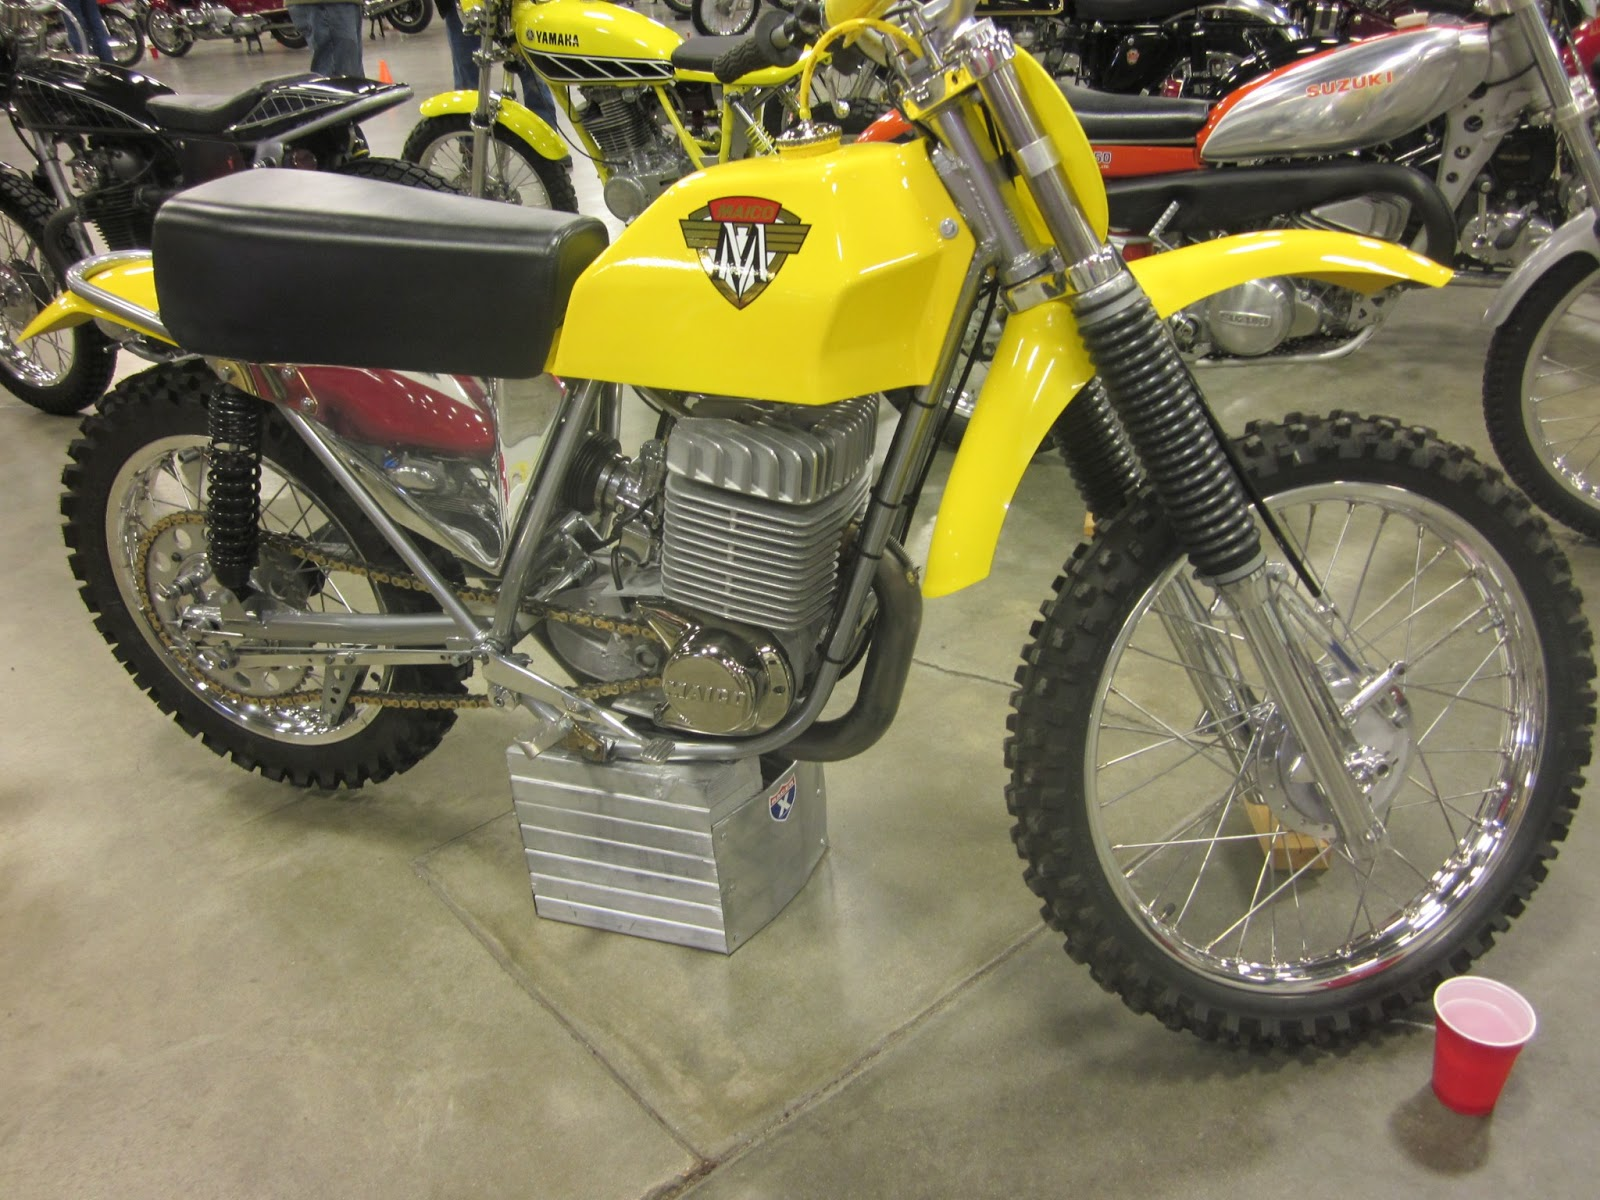 Oldmotodude 1971 Maico Mx400 On Display At The 2013 Idaho